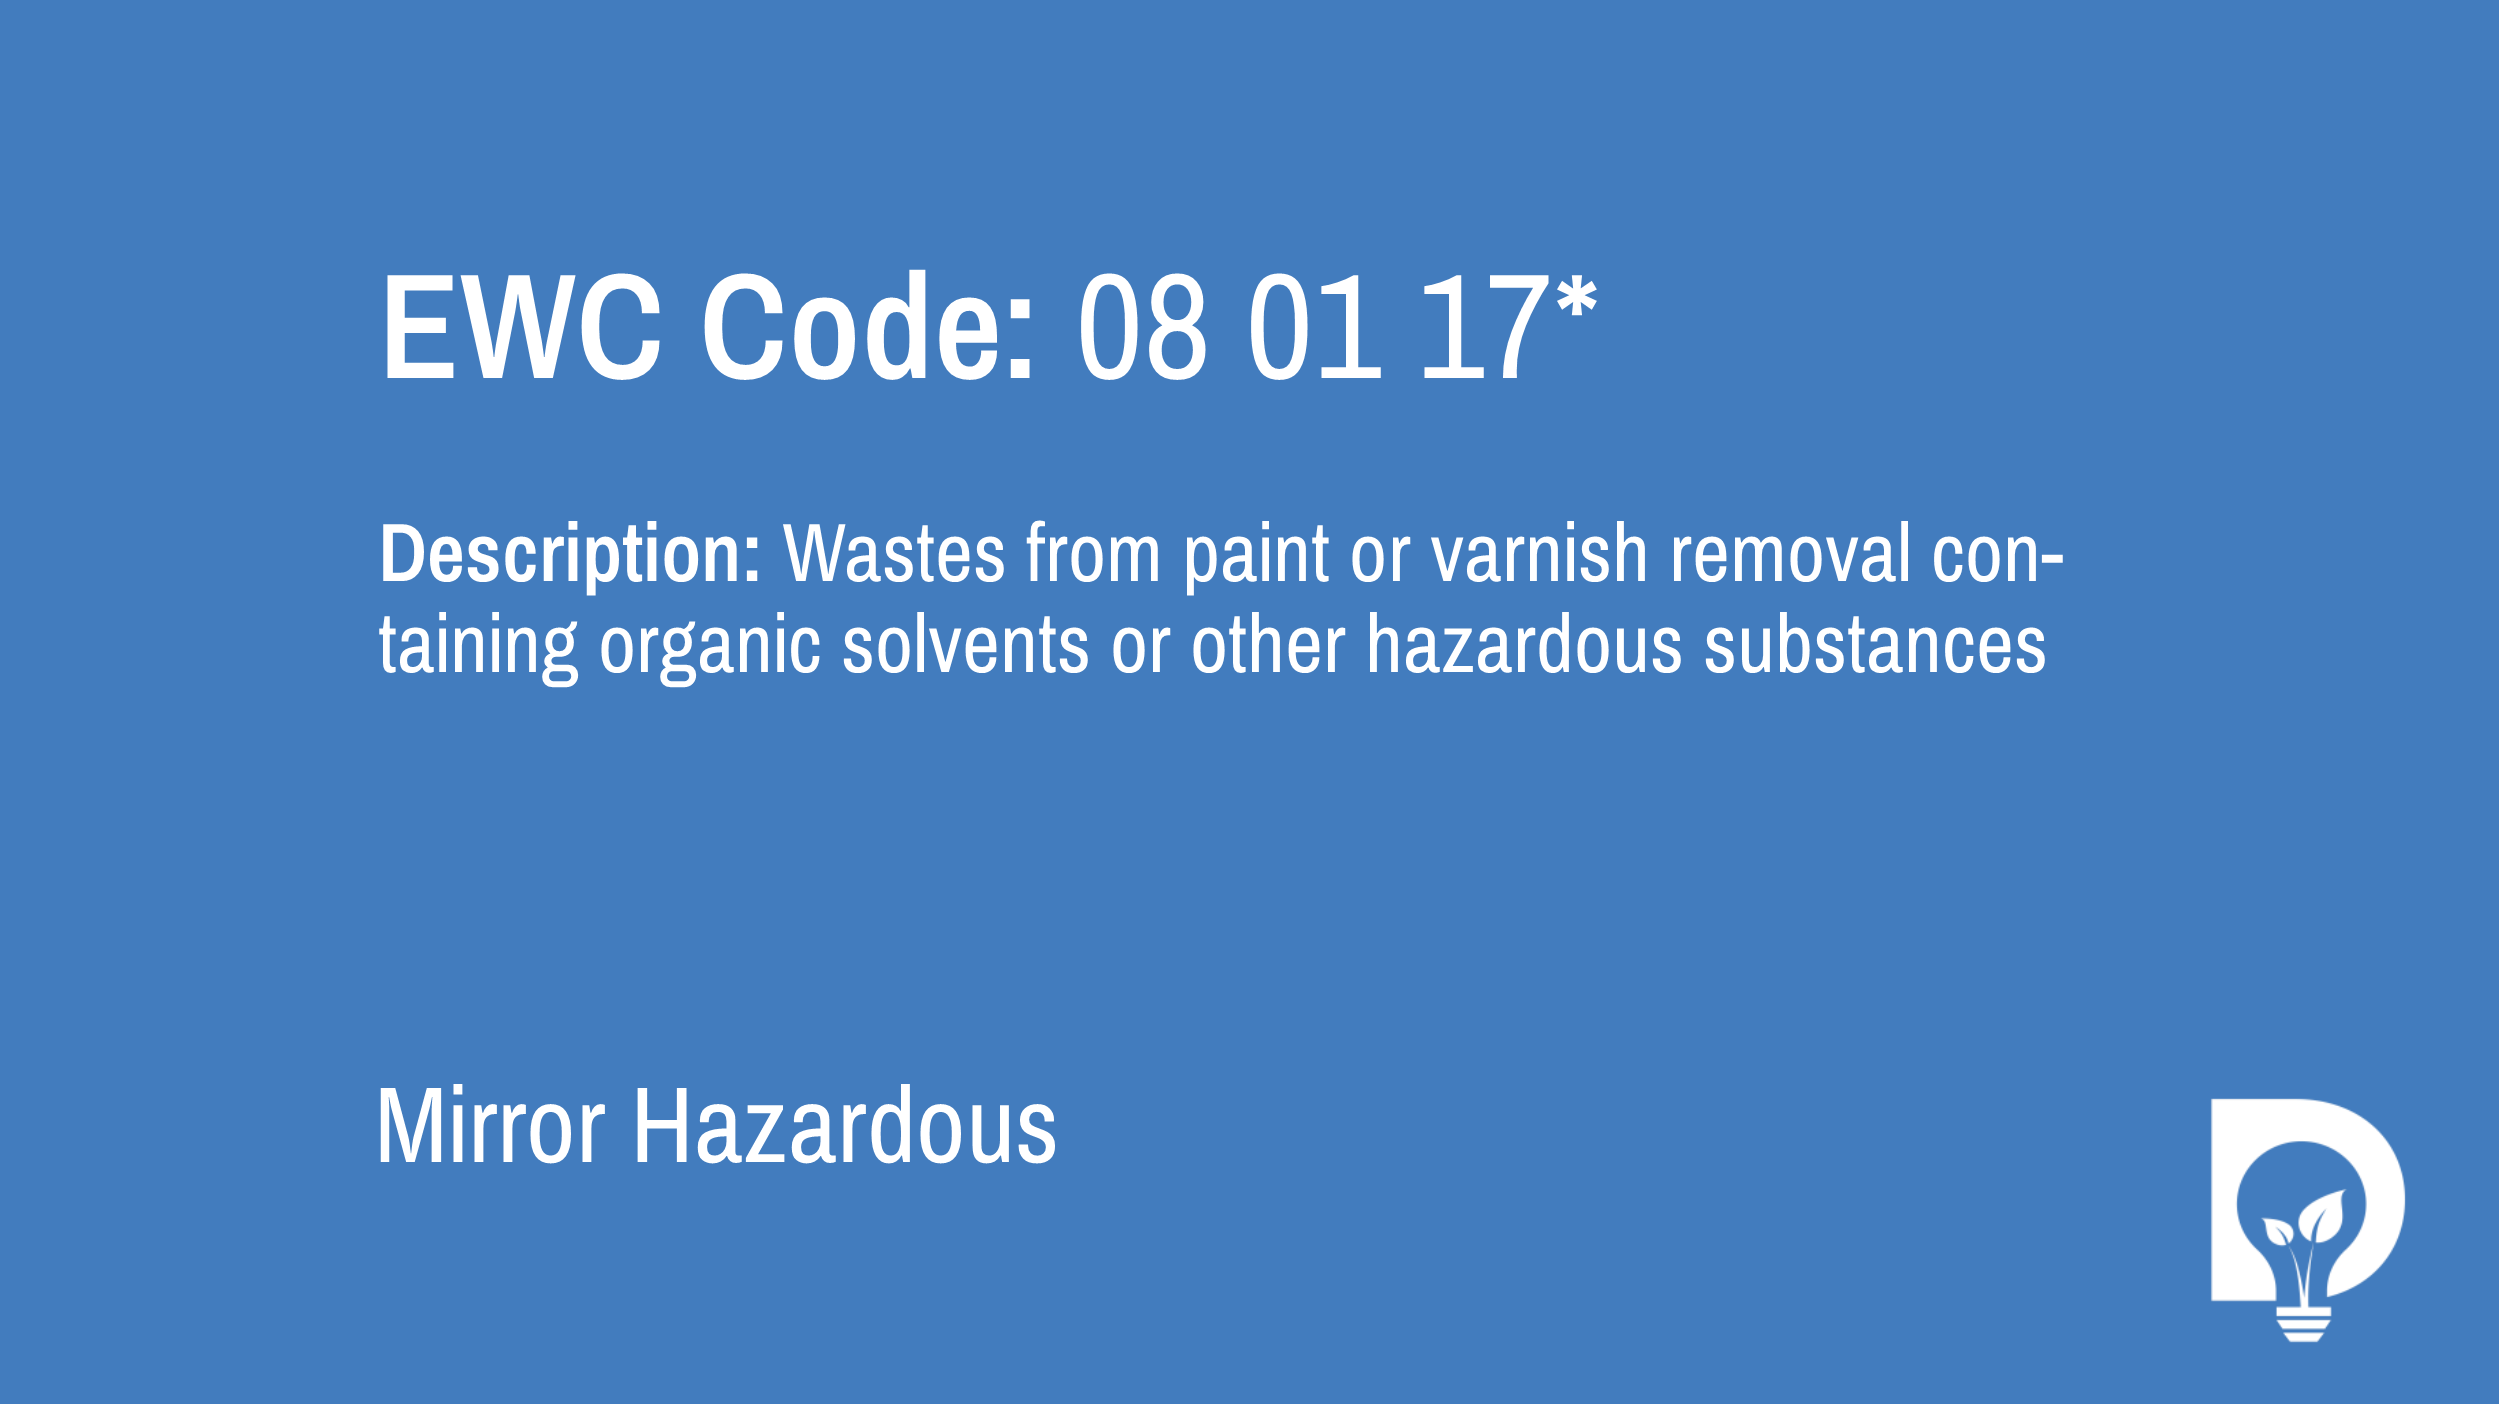 EWC Code: 08 01 17* | wastes from paint or varnish removal